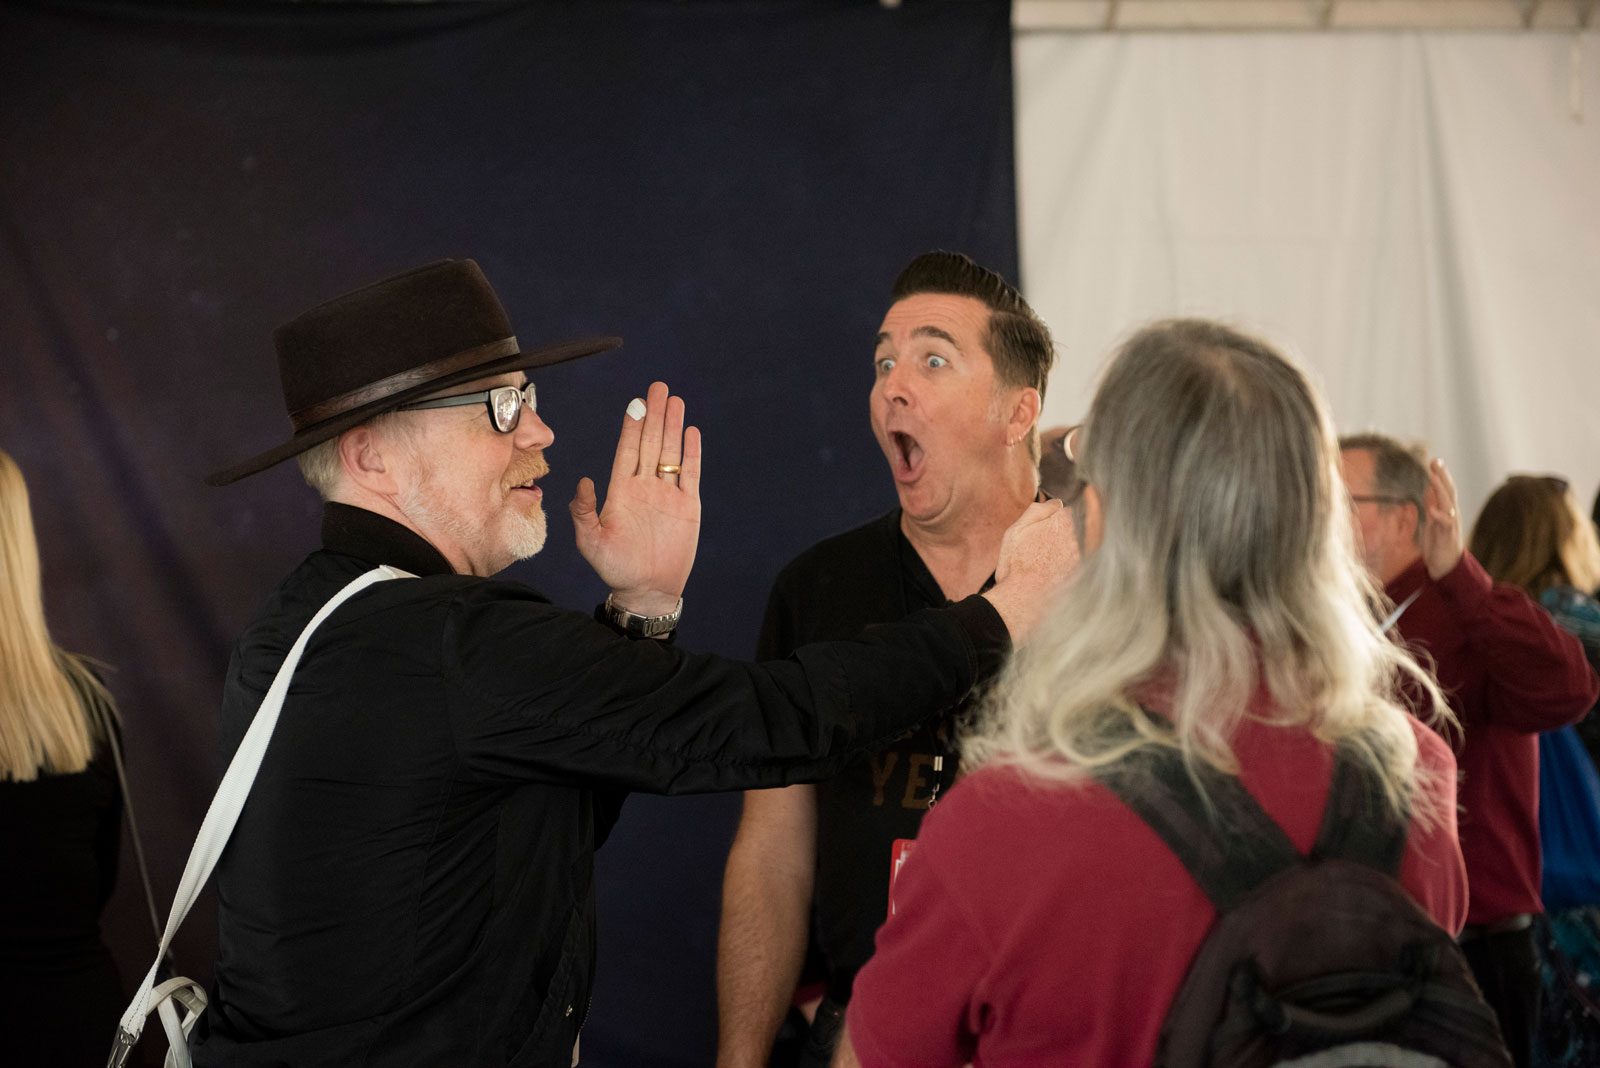 Mythbuster Adam Savage and Engineer Adam Steltzner at NASA's Jet Propulsion Laboratory on Nov. 26, 2018, for the landing of InSight on Mars.